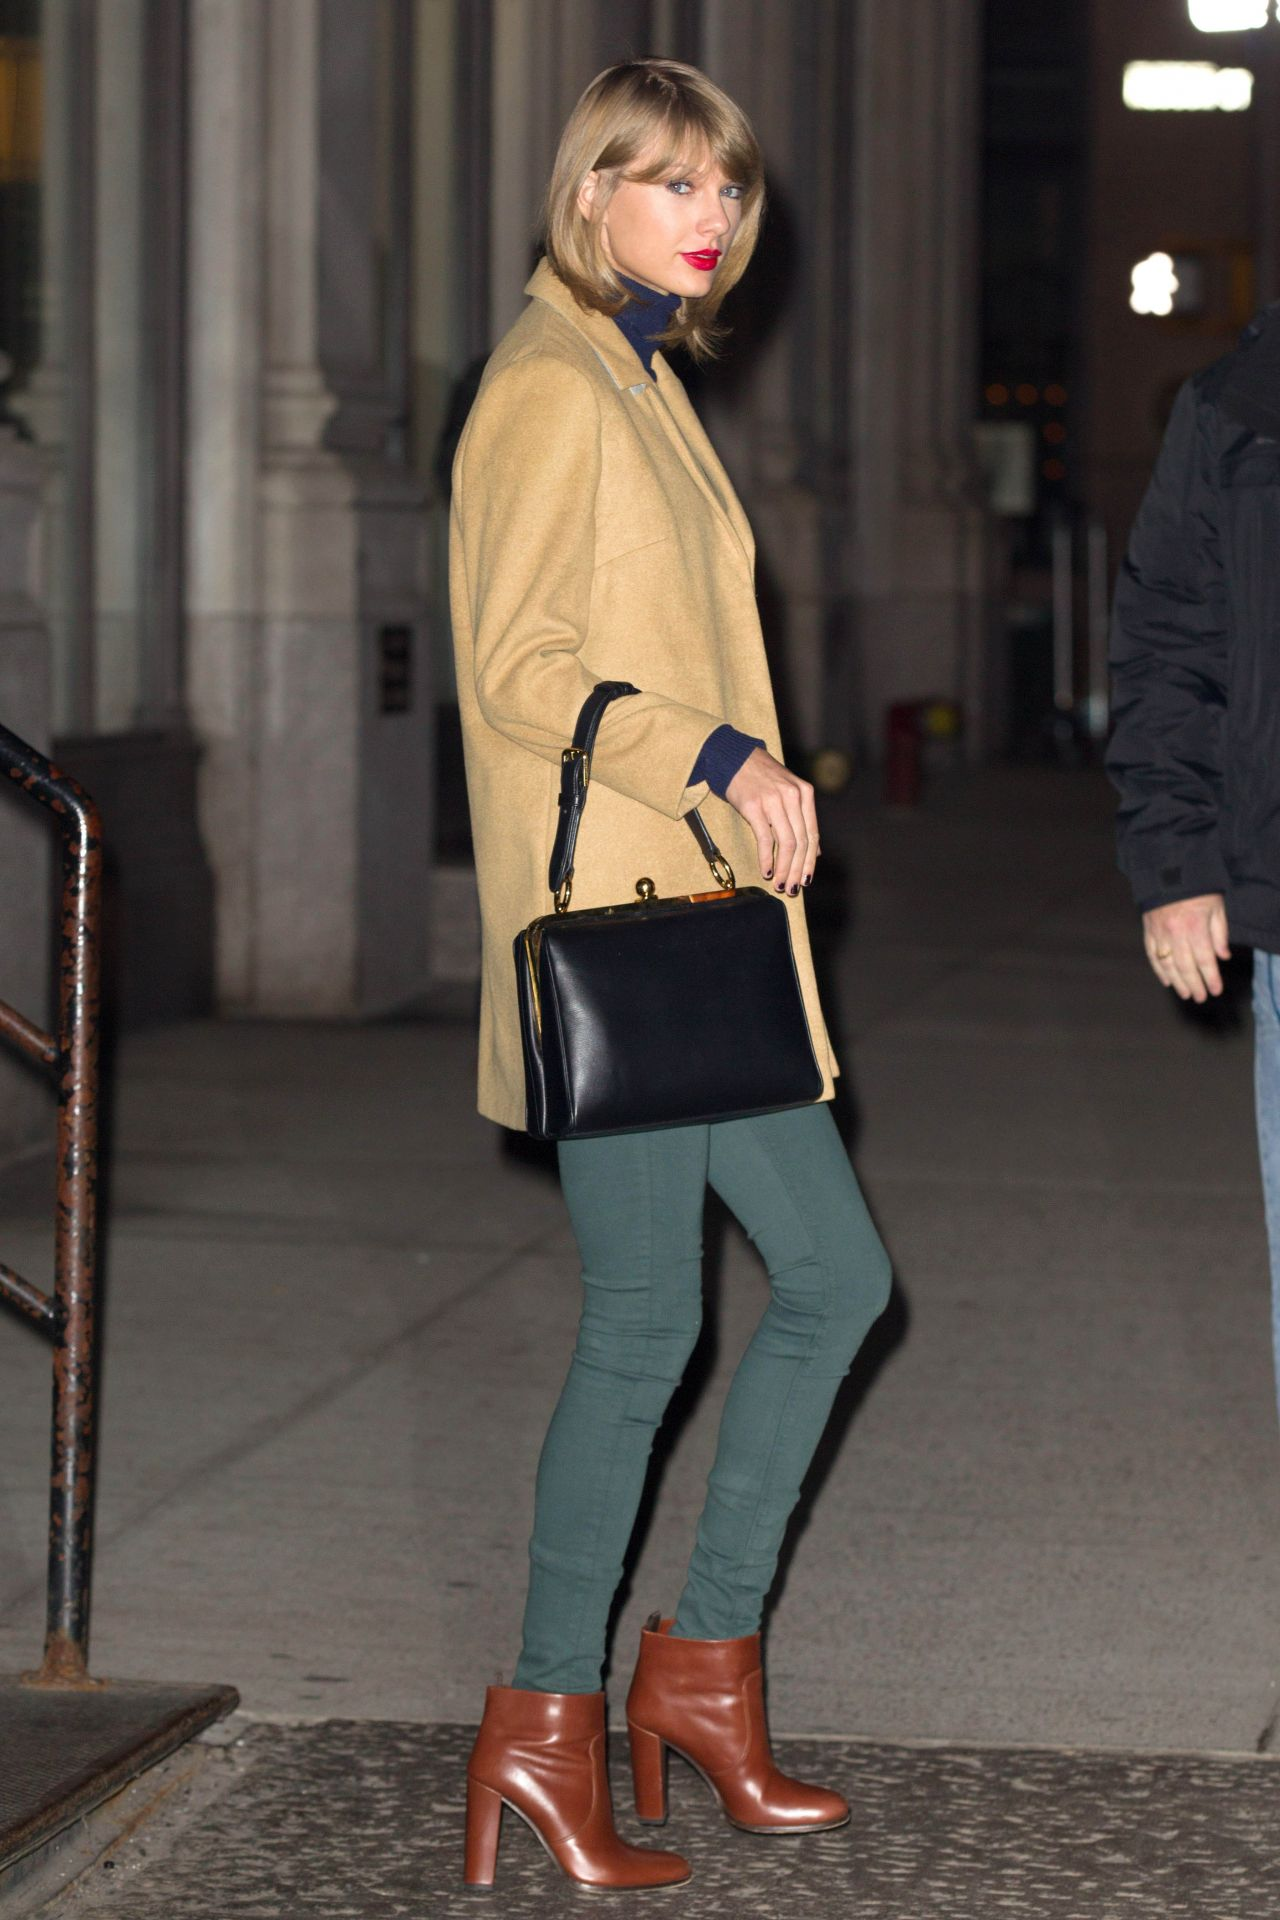 Taylor Swift – Leaving Her Apartment in New York City – Dec. 2014